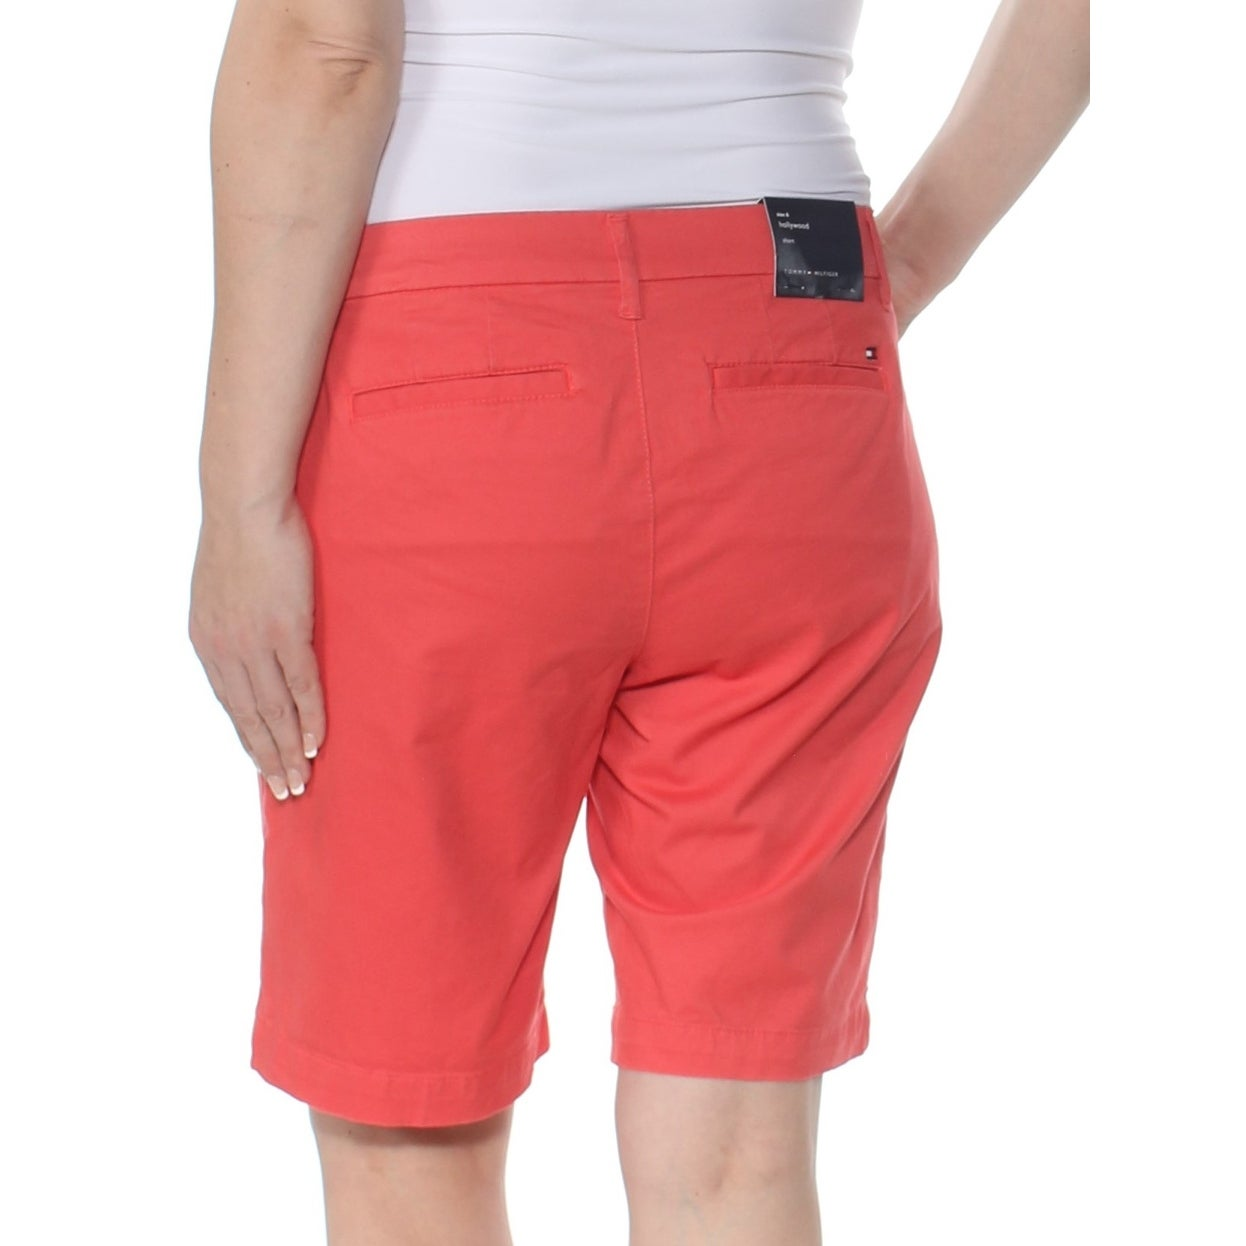 00c37c2e Shop TOMMY HILFIGER Womens Coral Short Size: 14 - Free Shipping On Orders  Over $45 - Overstock - 28253868